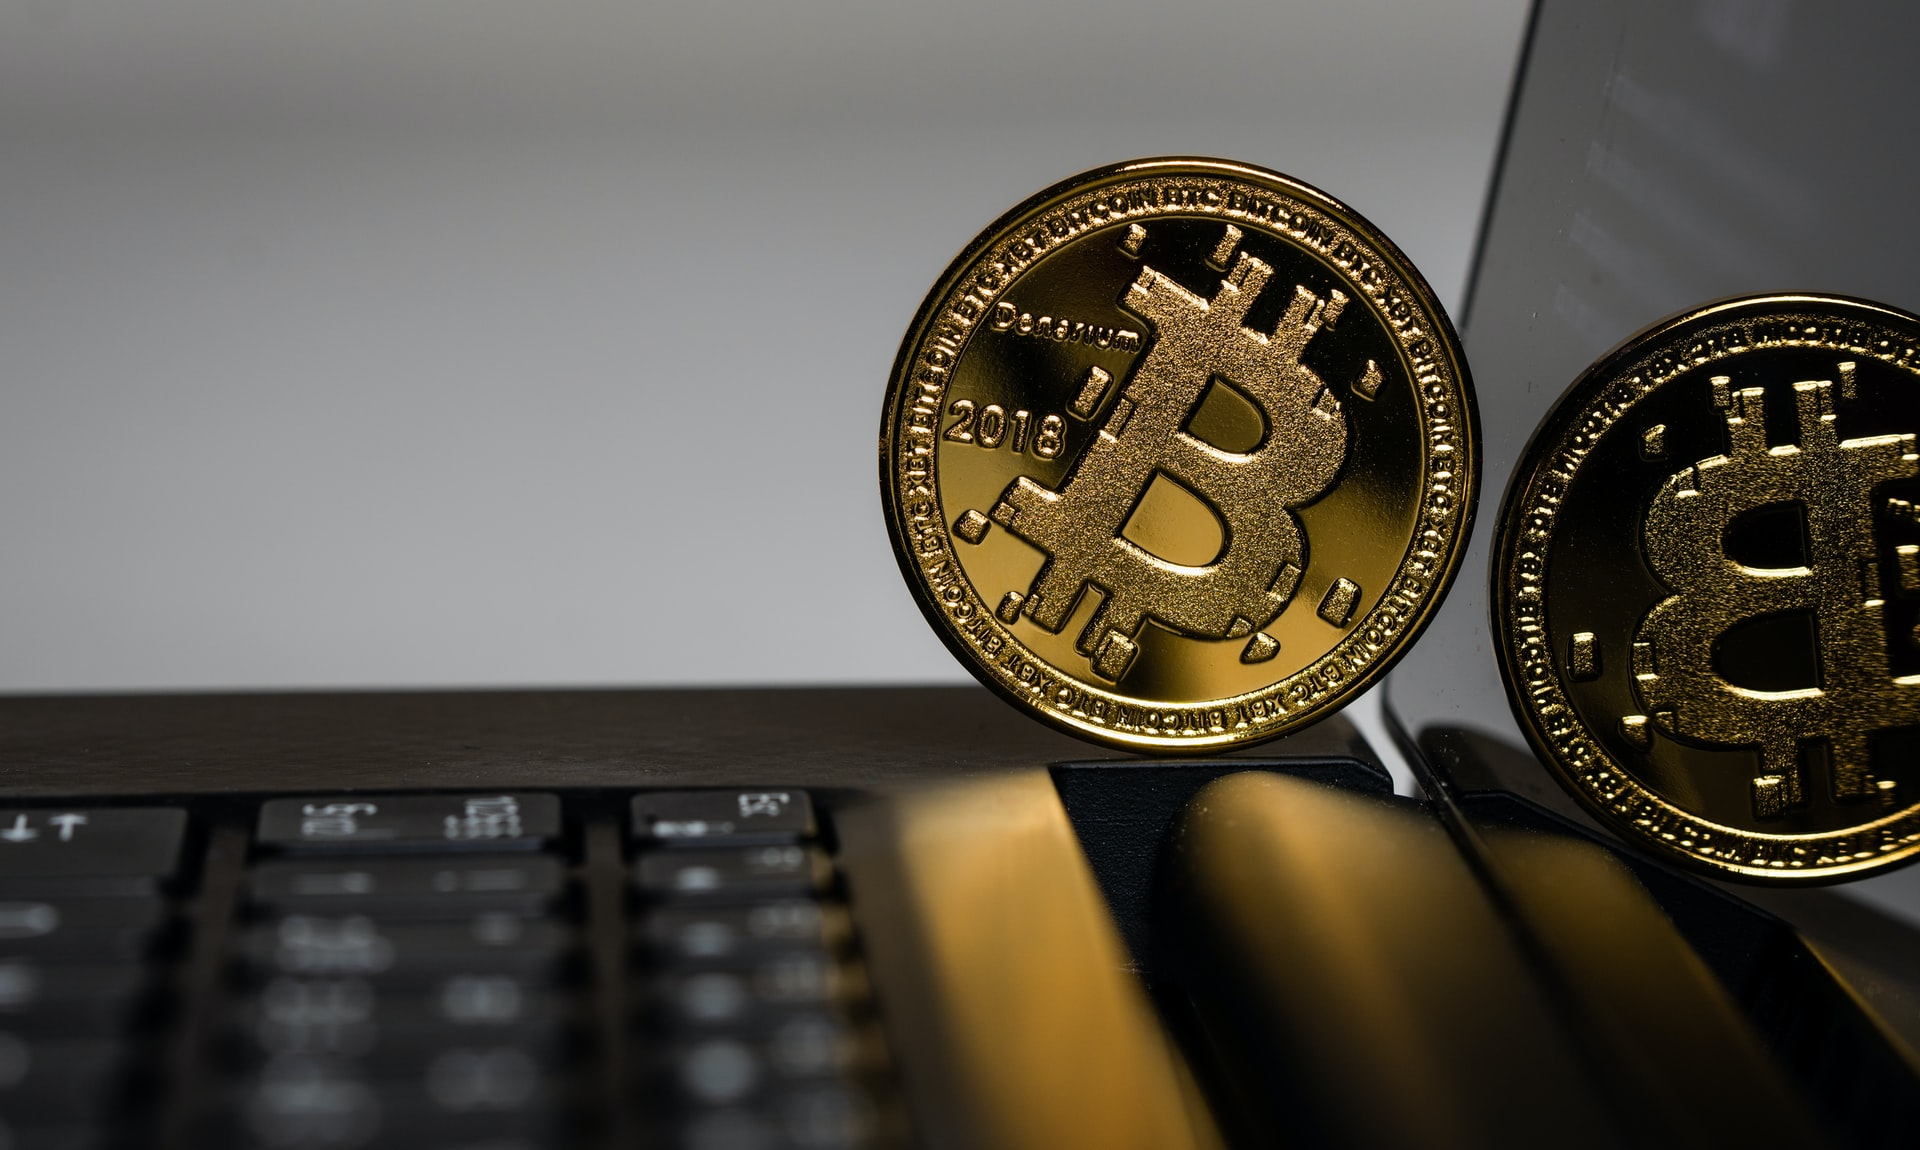 Image of Bitcoin on laptop